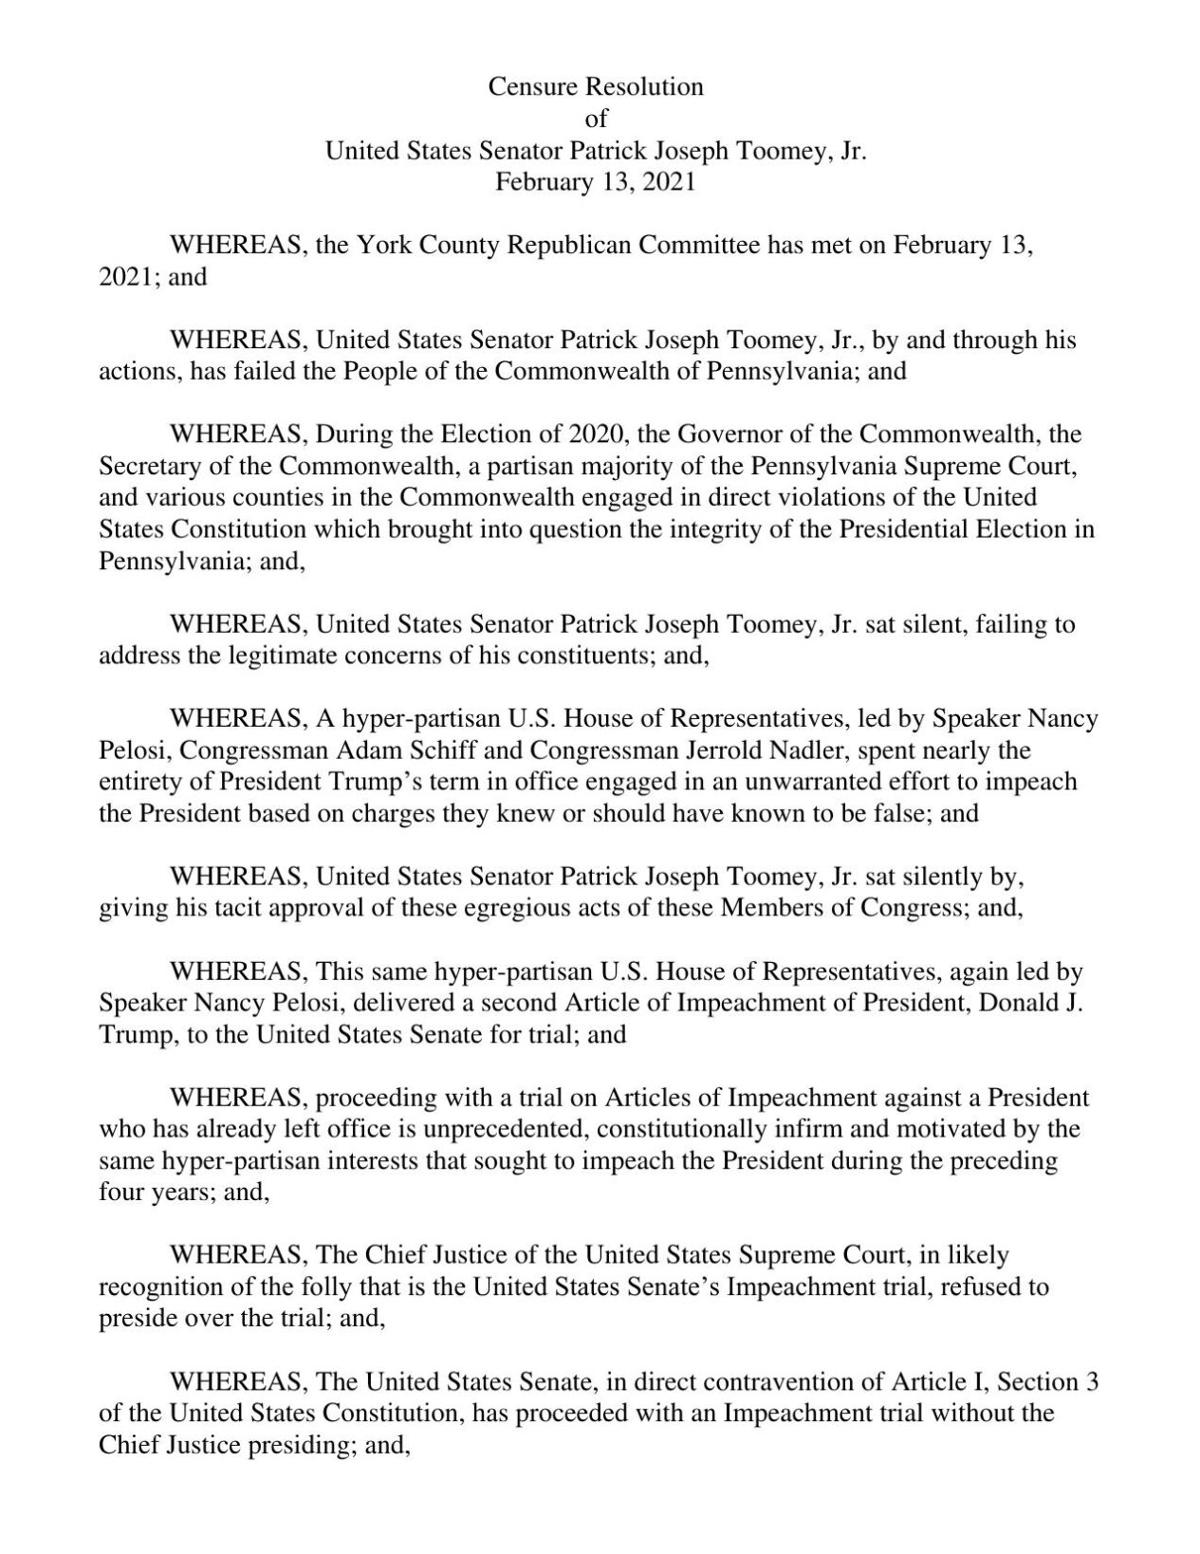 York County Republican Committee Resolution